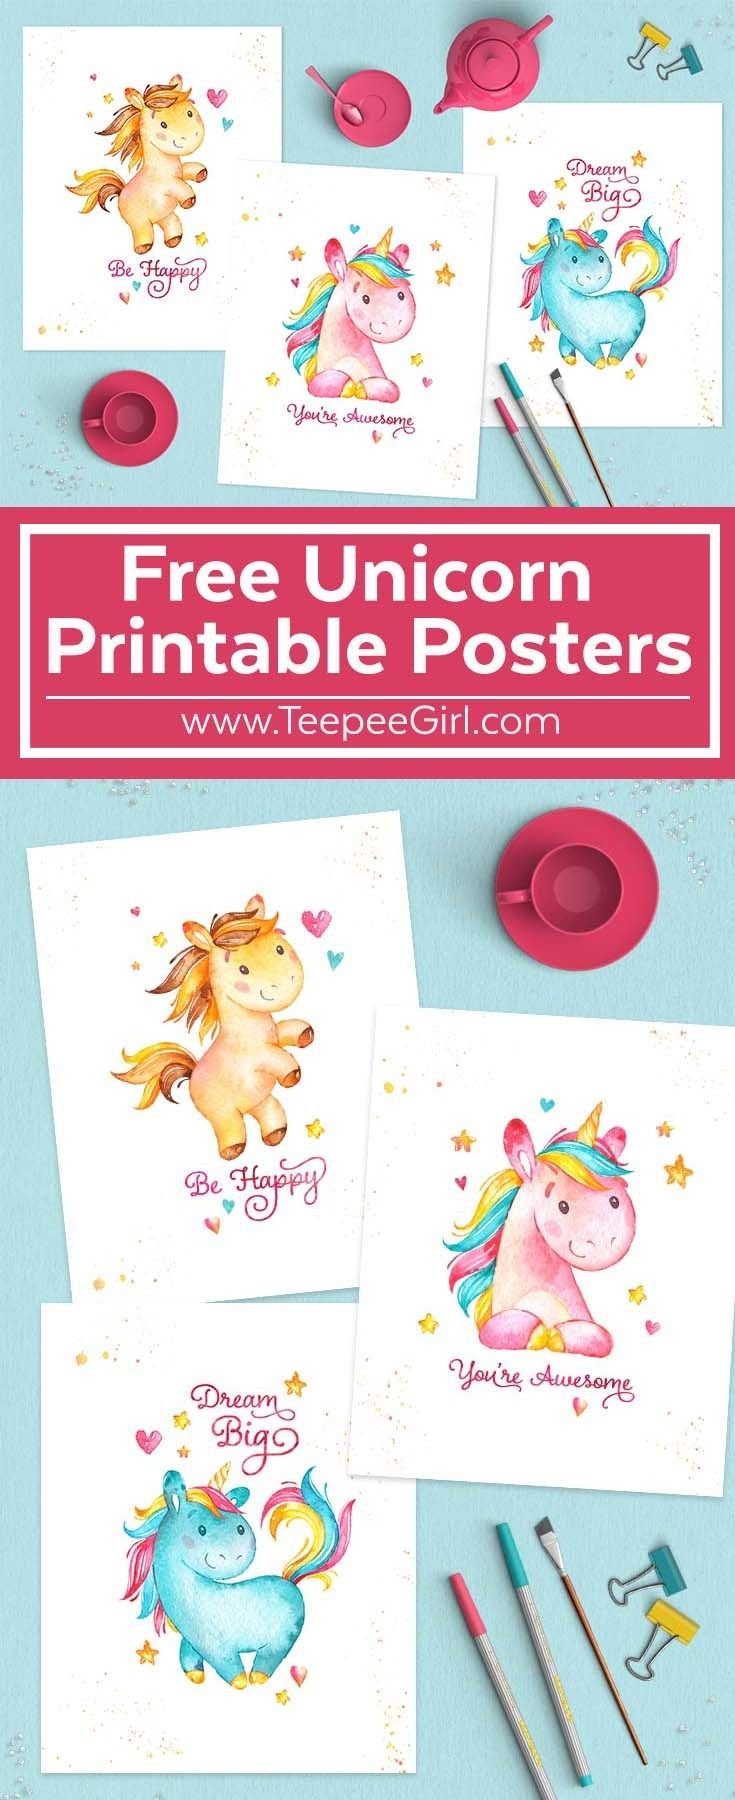 Get These Free 8x10 Unicorn Posters Today At TeepeeGirl